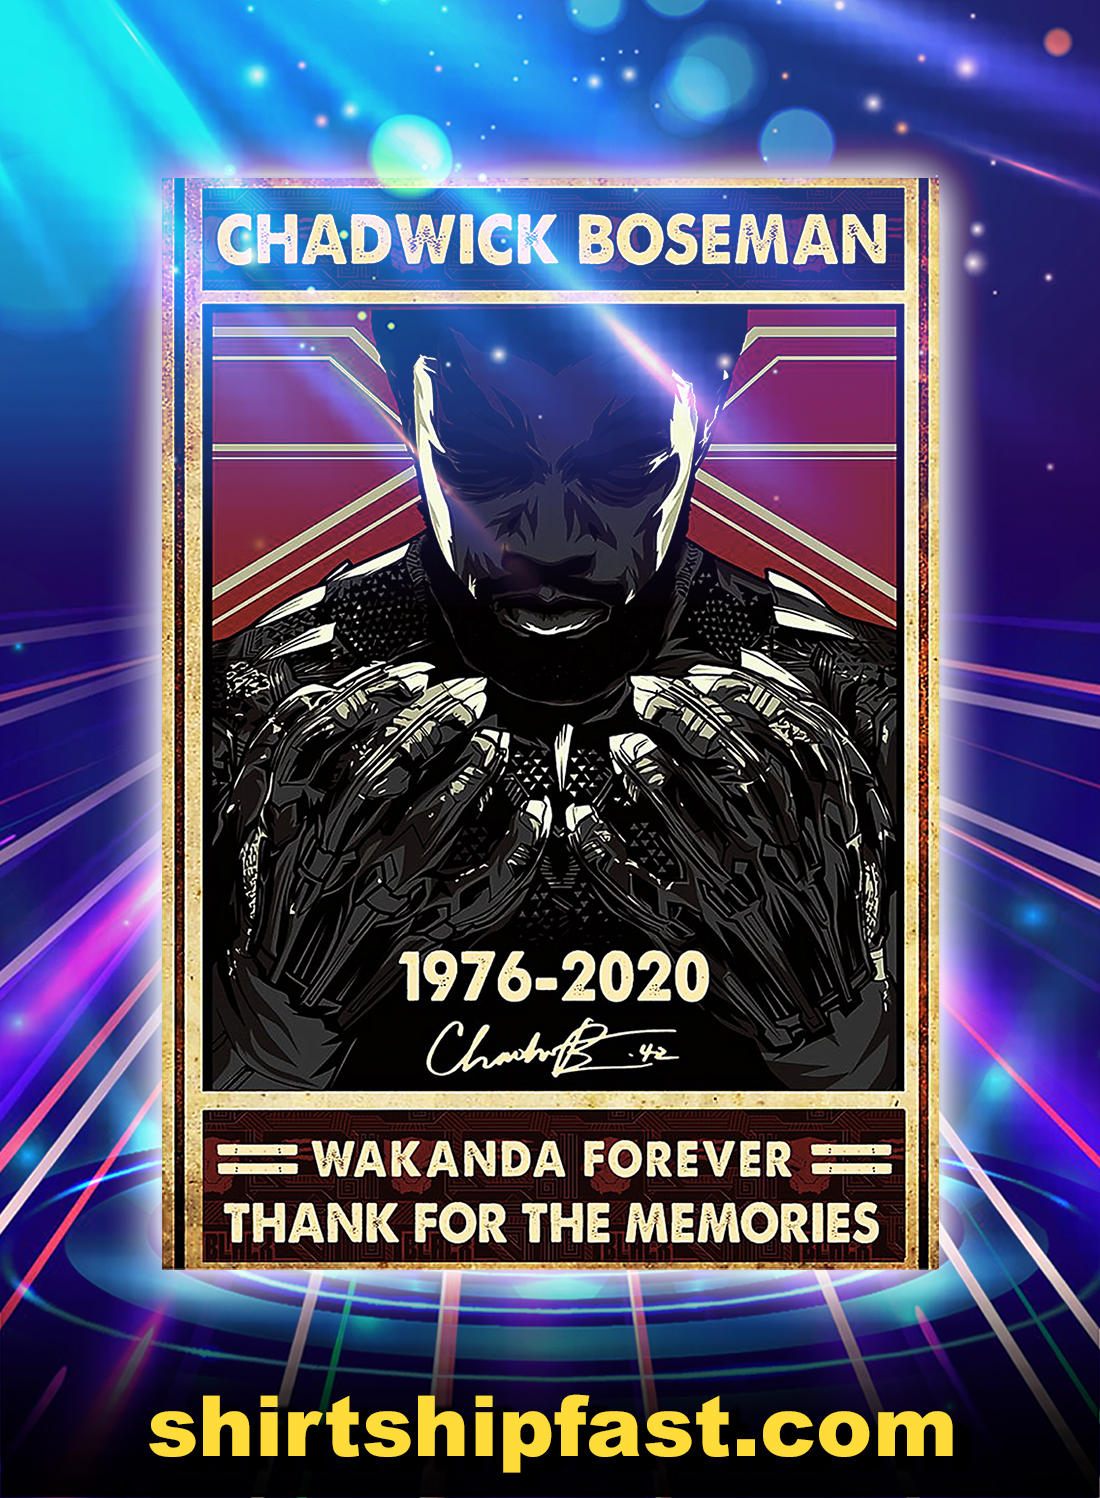 Chadwick boseman wakanda forever thank for the memories poster - A4